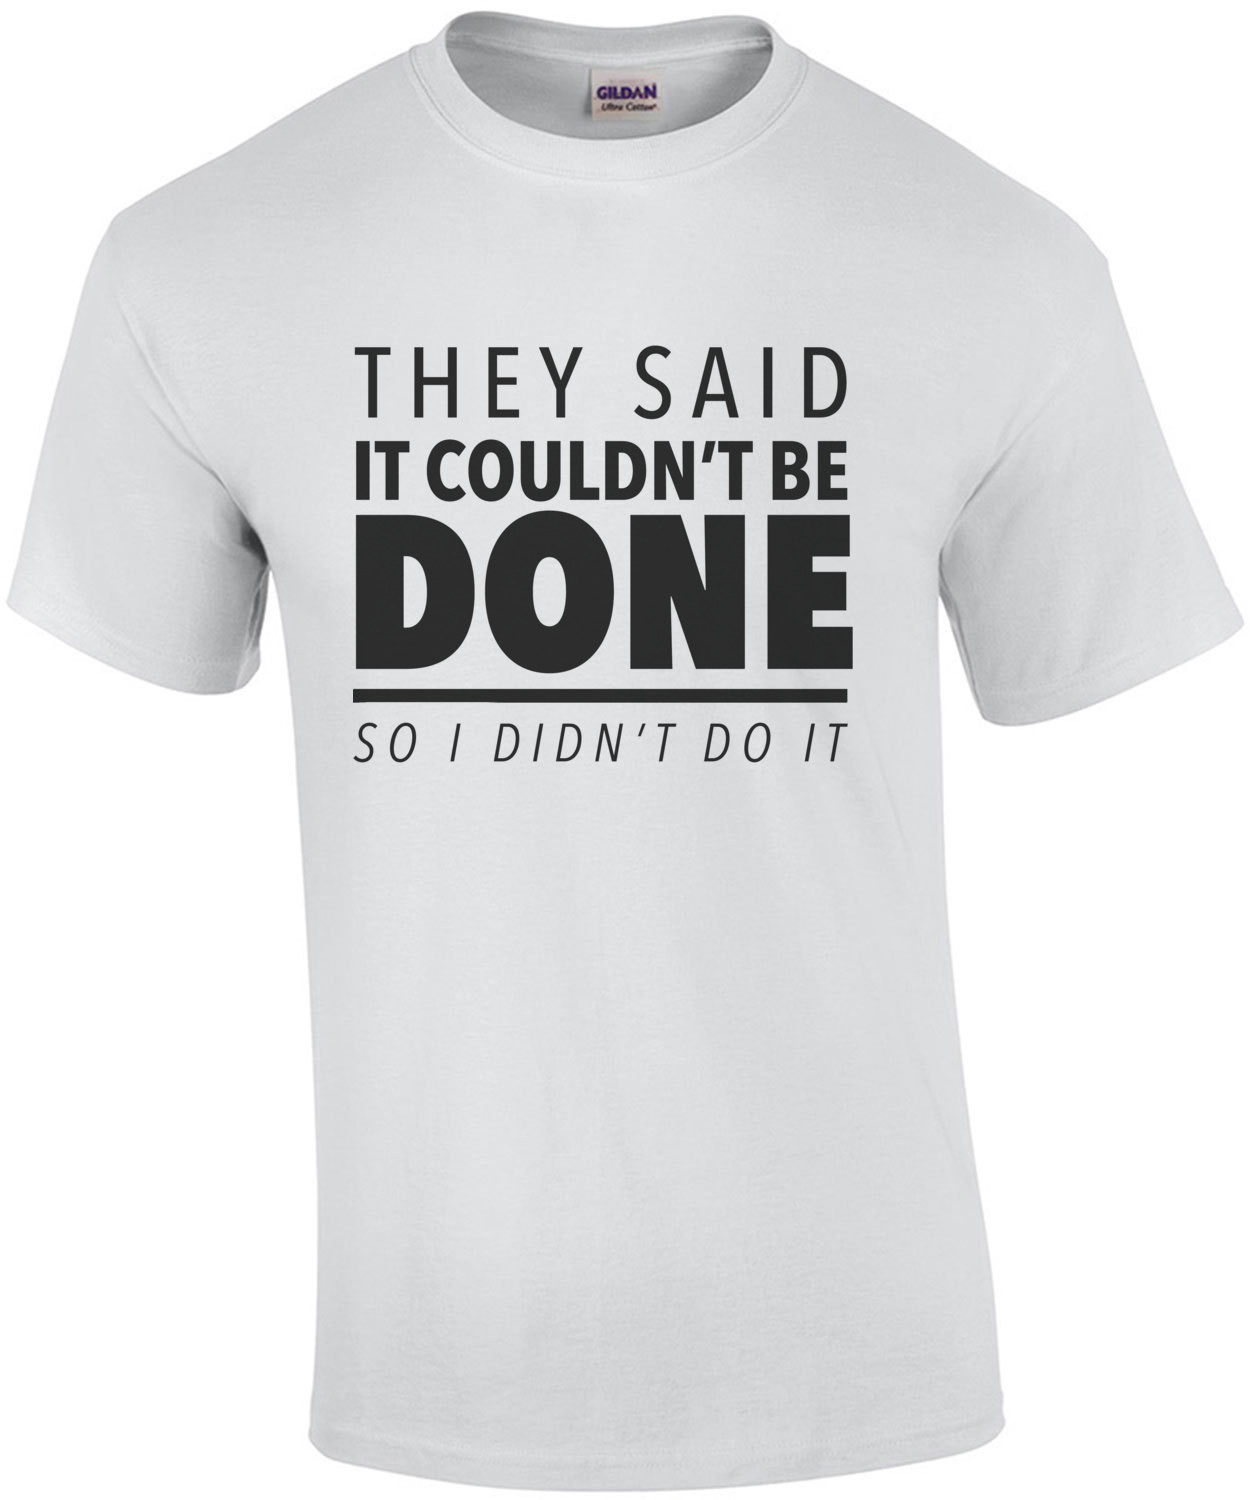 They said it couldn't be done - so I didn't do it - sarcastic t-shirt